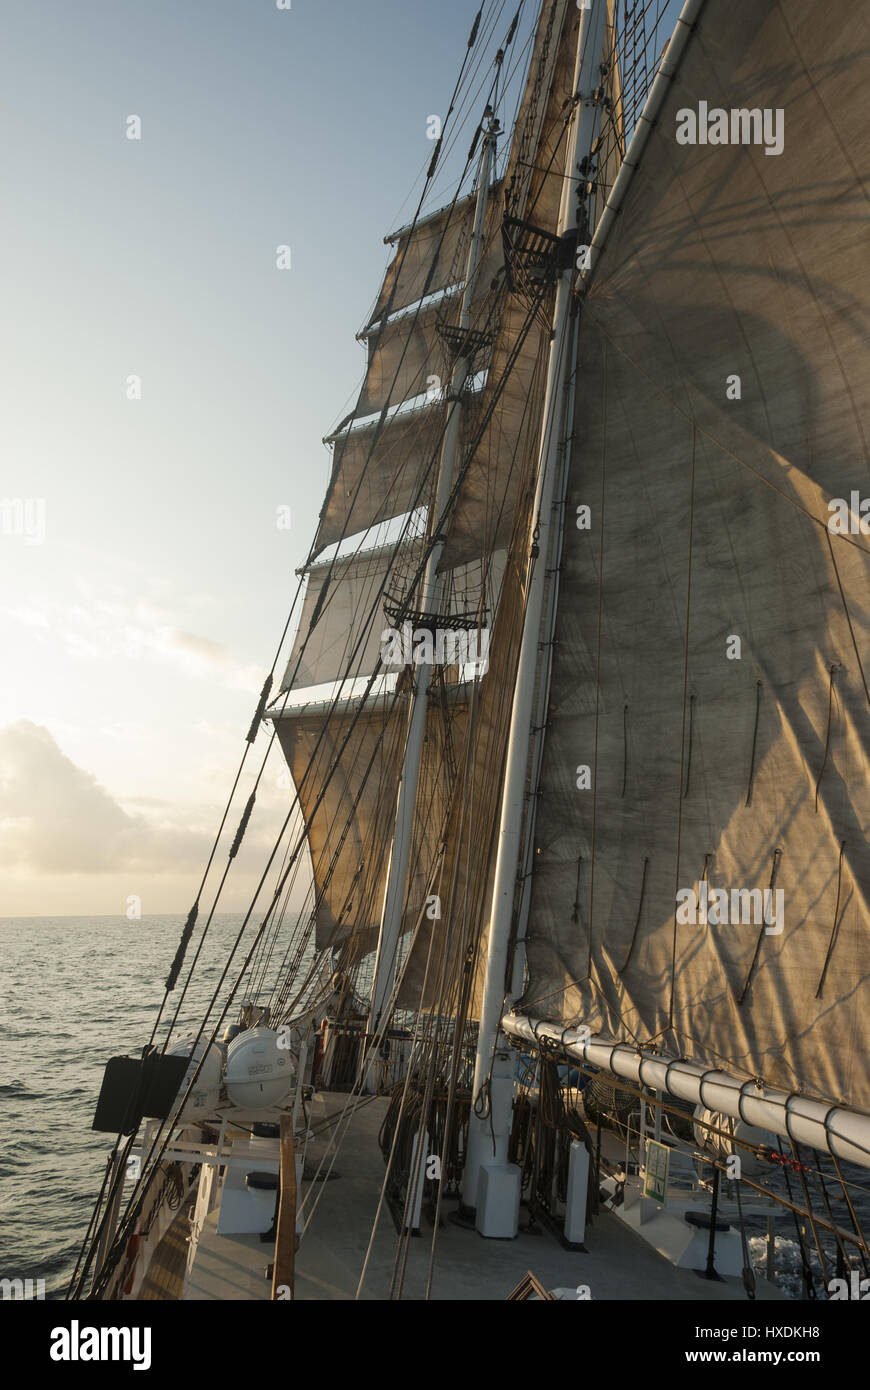 Ecuador, Galapagos, Rigging and sails of barquentine boat - Stock Image